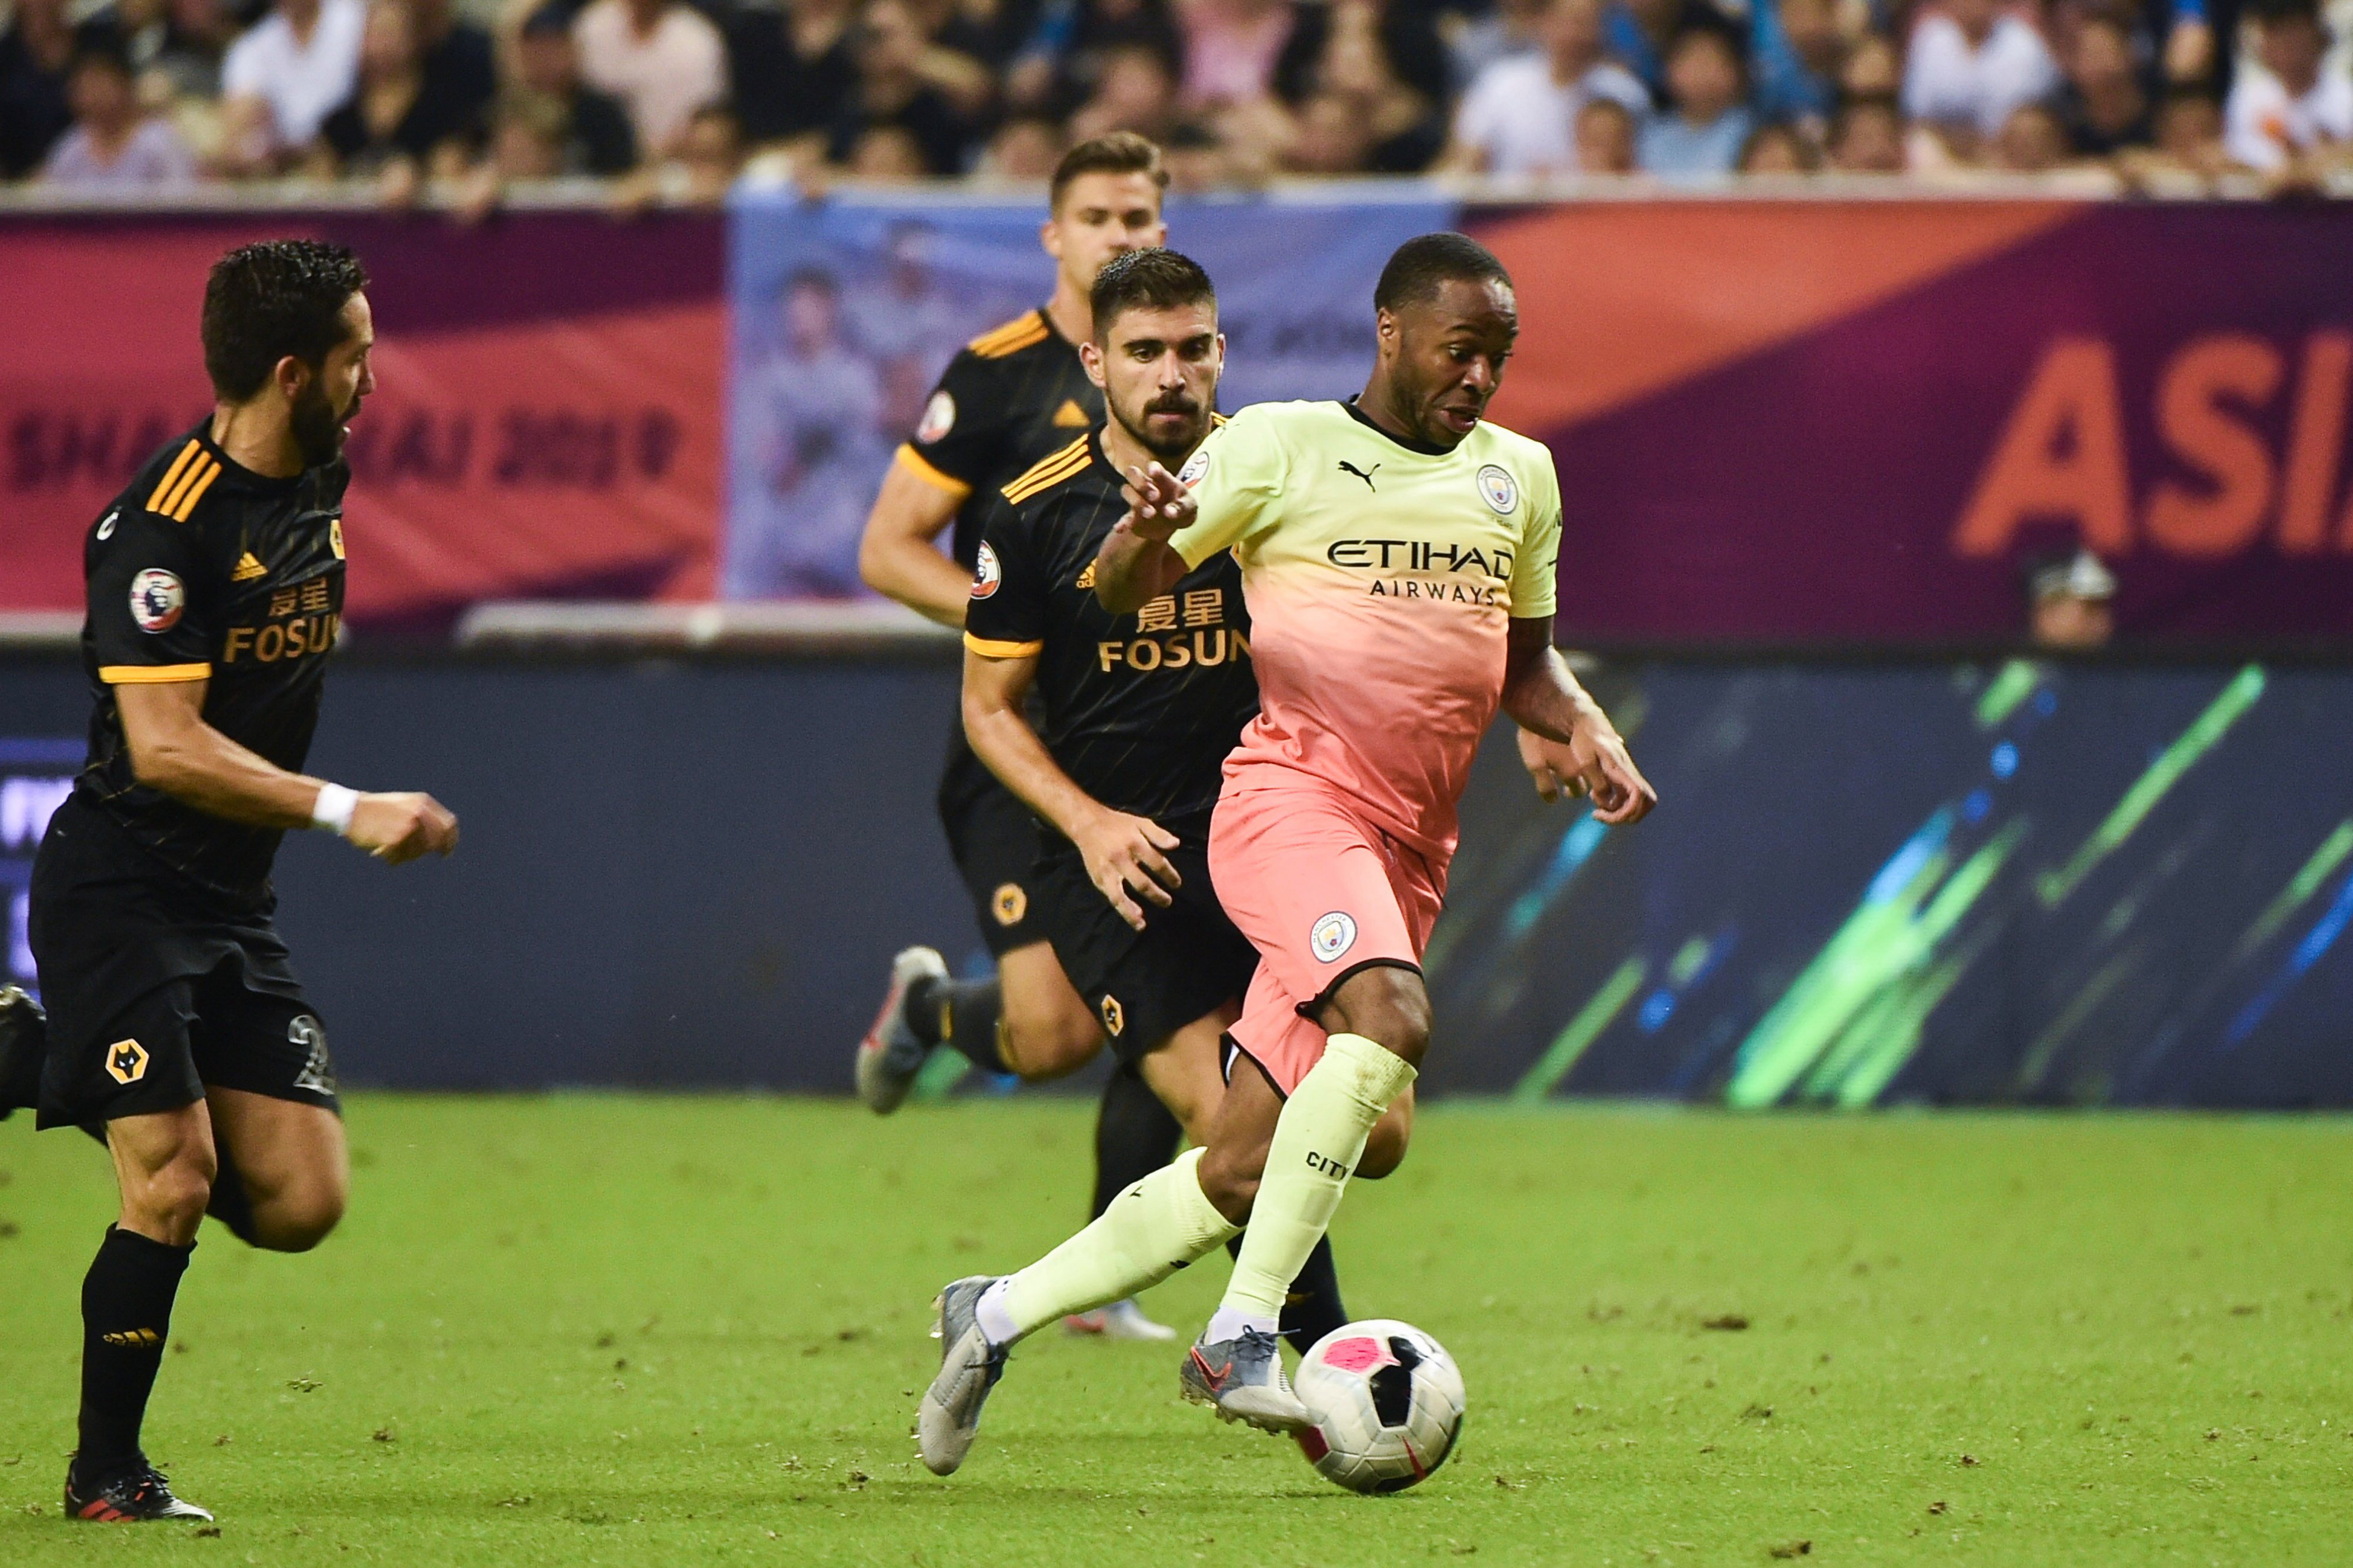 Raheem Sterling in action for Man City during pre-season